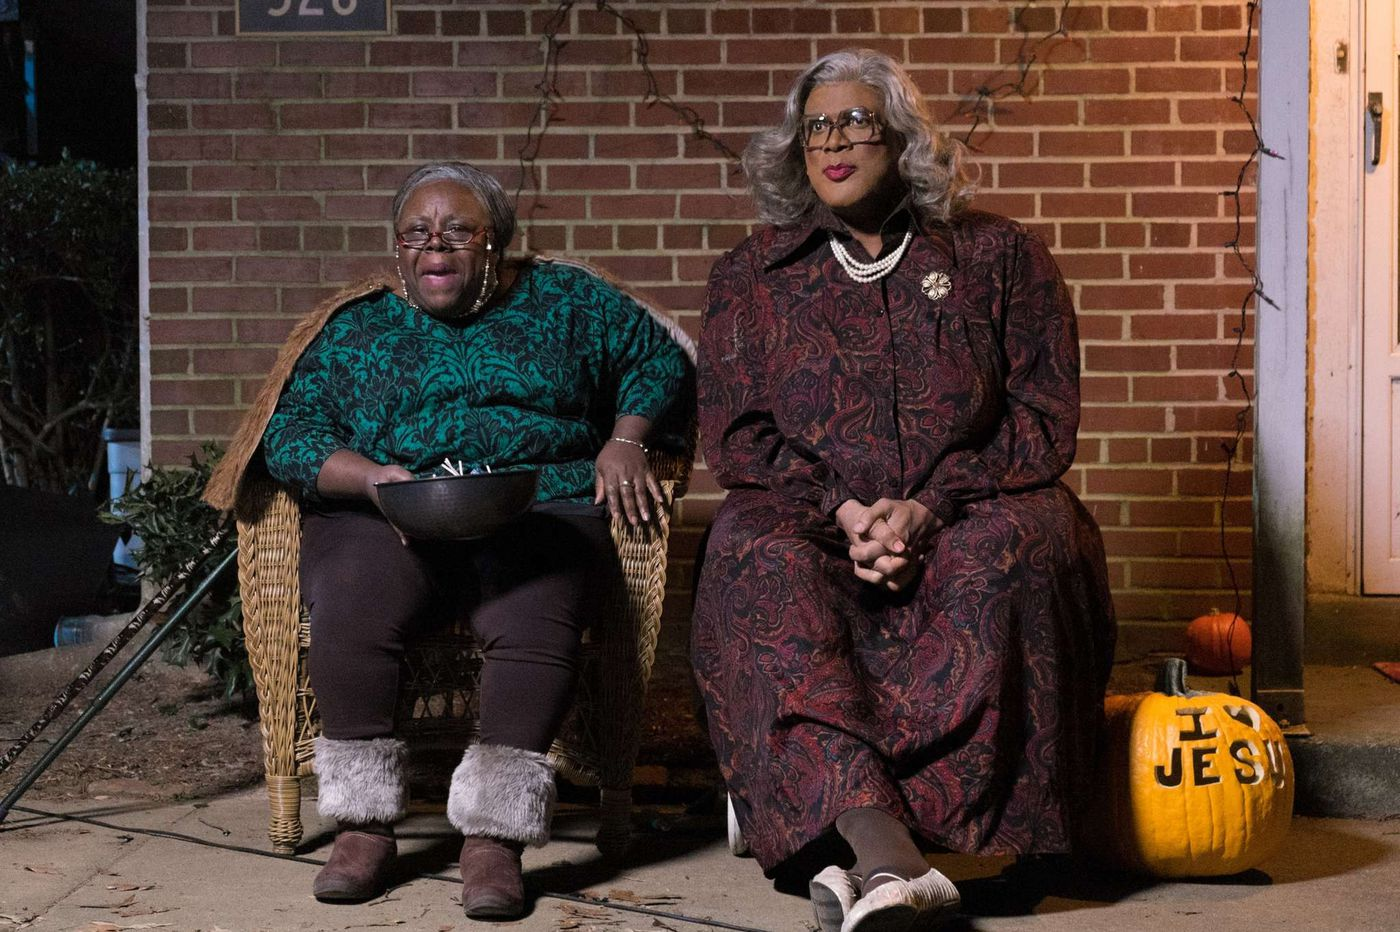 7 days of things to do, March 17 to 23: See Tyler Perry's Madea, listen to Lidia Bastianich